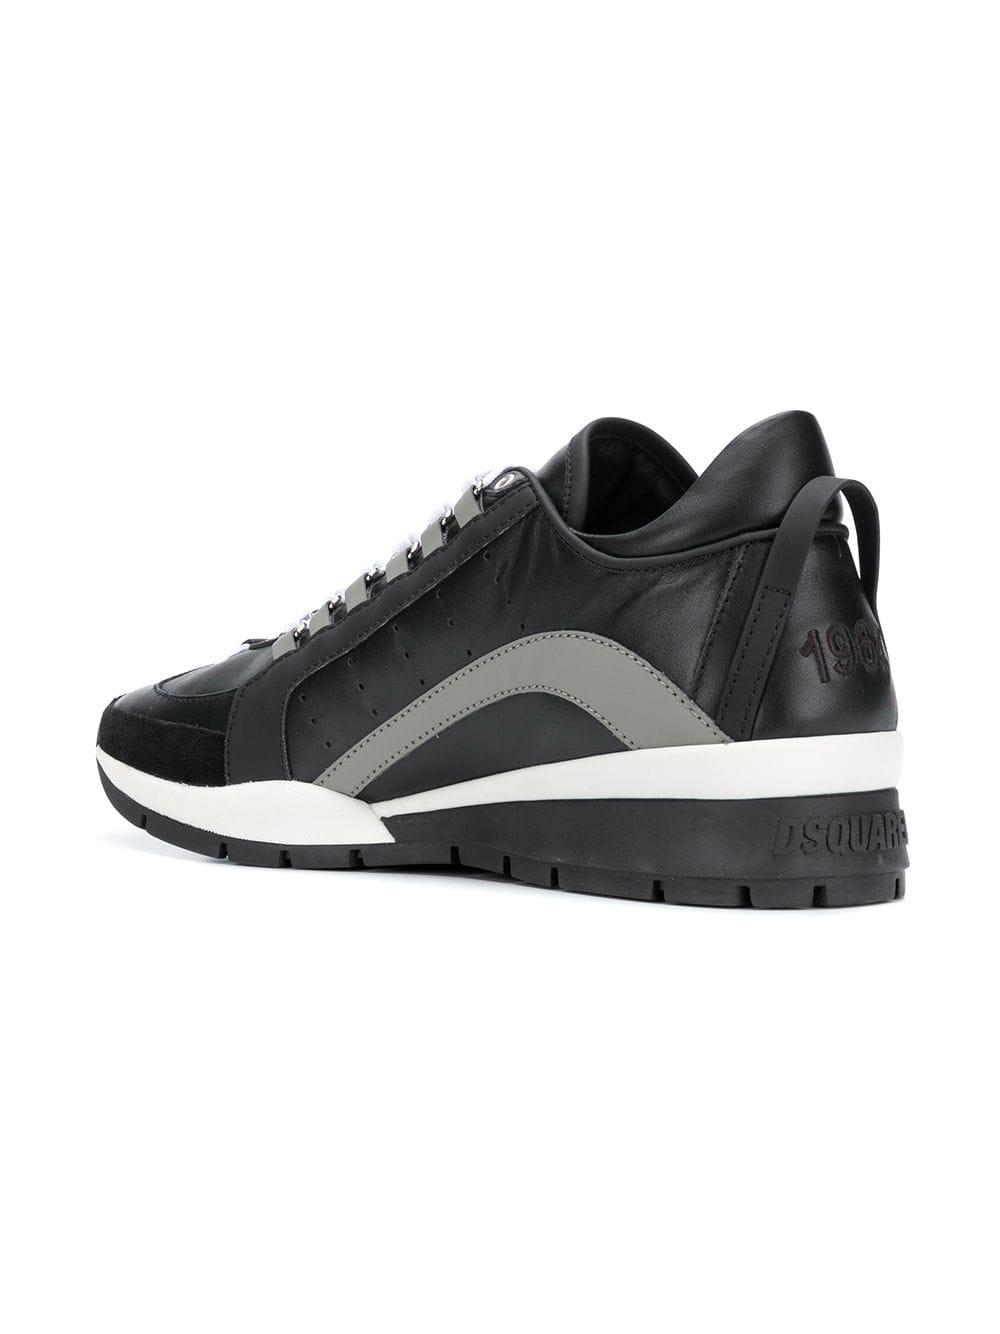 DSquared² Rubber 251 Sneakers in Black for Men